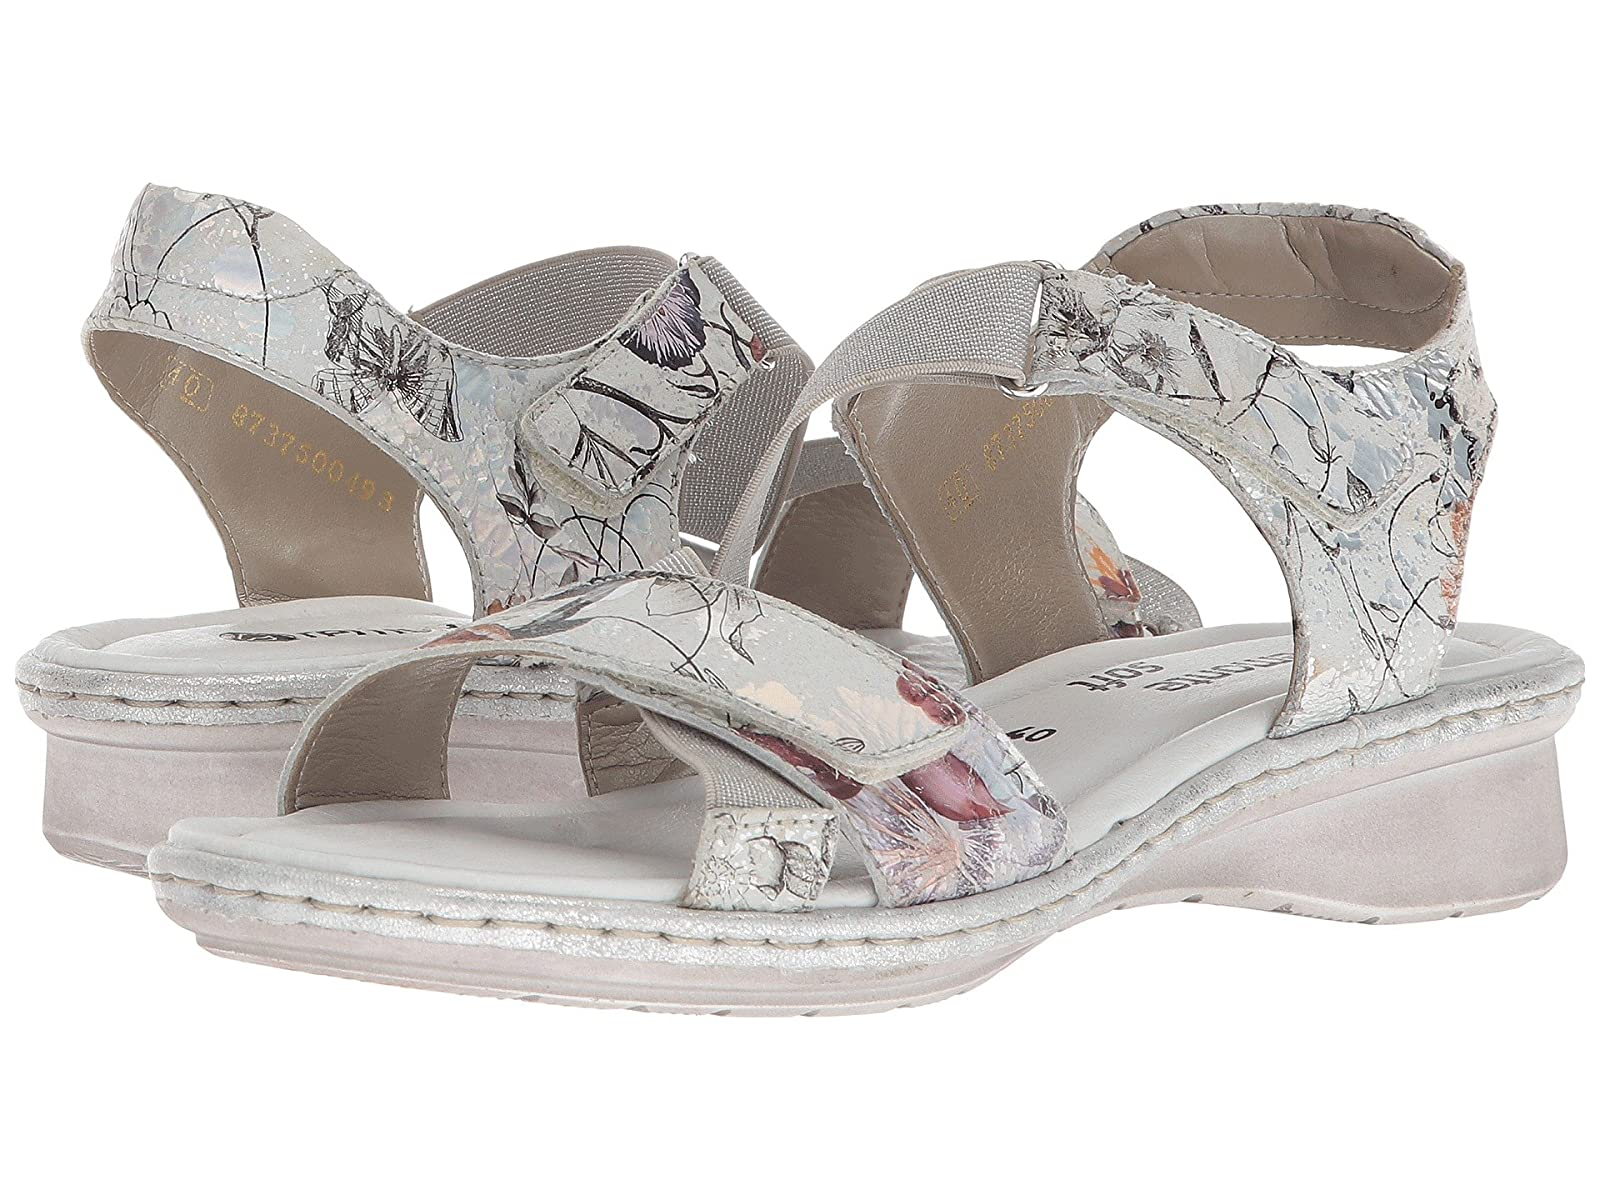 Rieker D2757 Reanne 57Cheap and distinctive eye-catching shoes